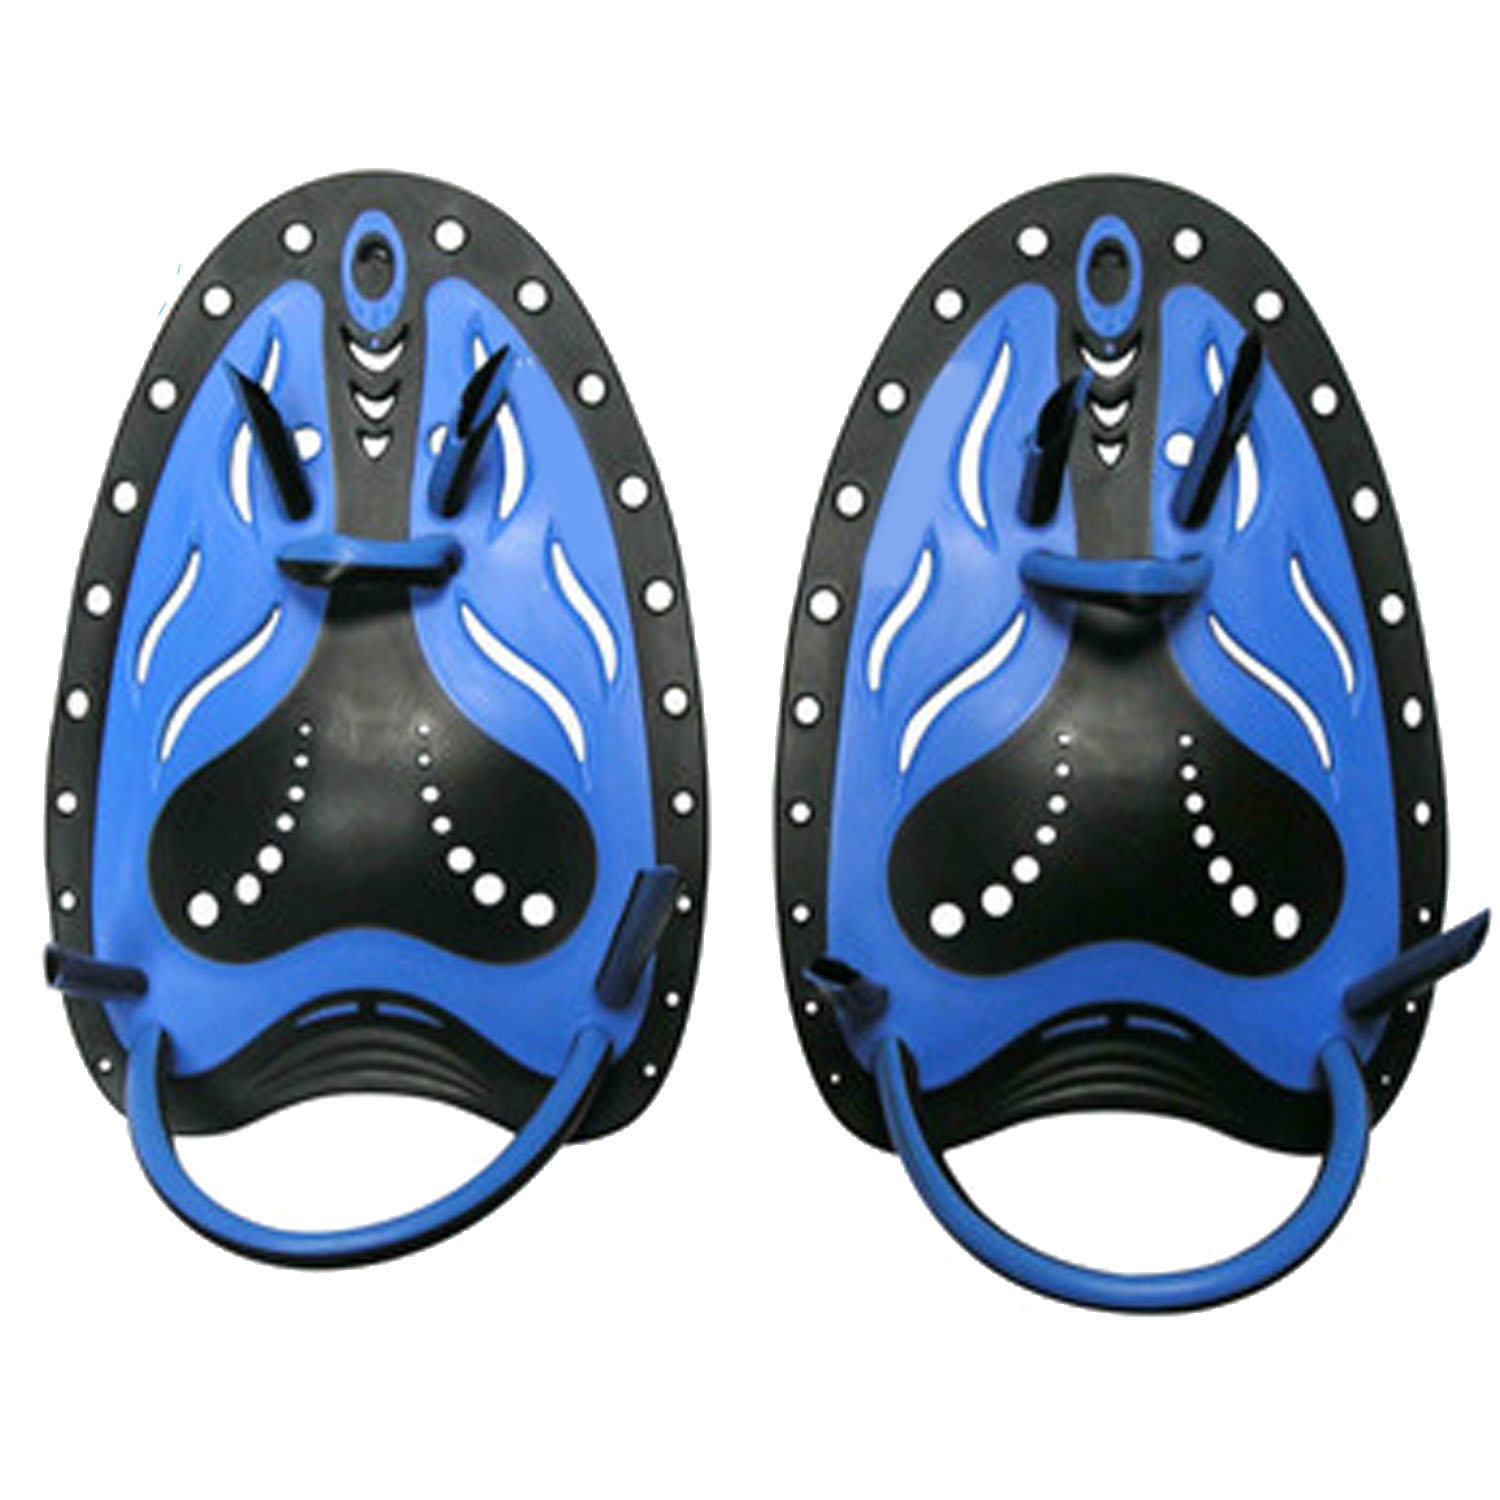 Kids Teenagers Professional Silicone Swim Training Hand Power Paddles with Adjustable Strap for Beginners Athlete Improving Stroke Skills Blue